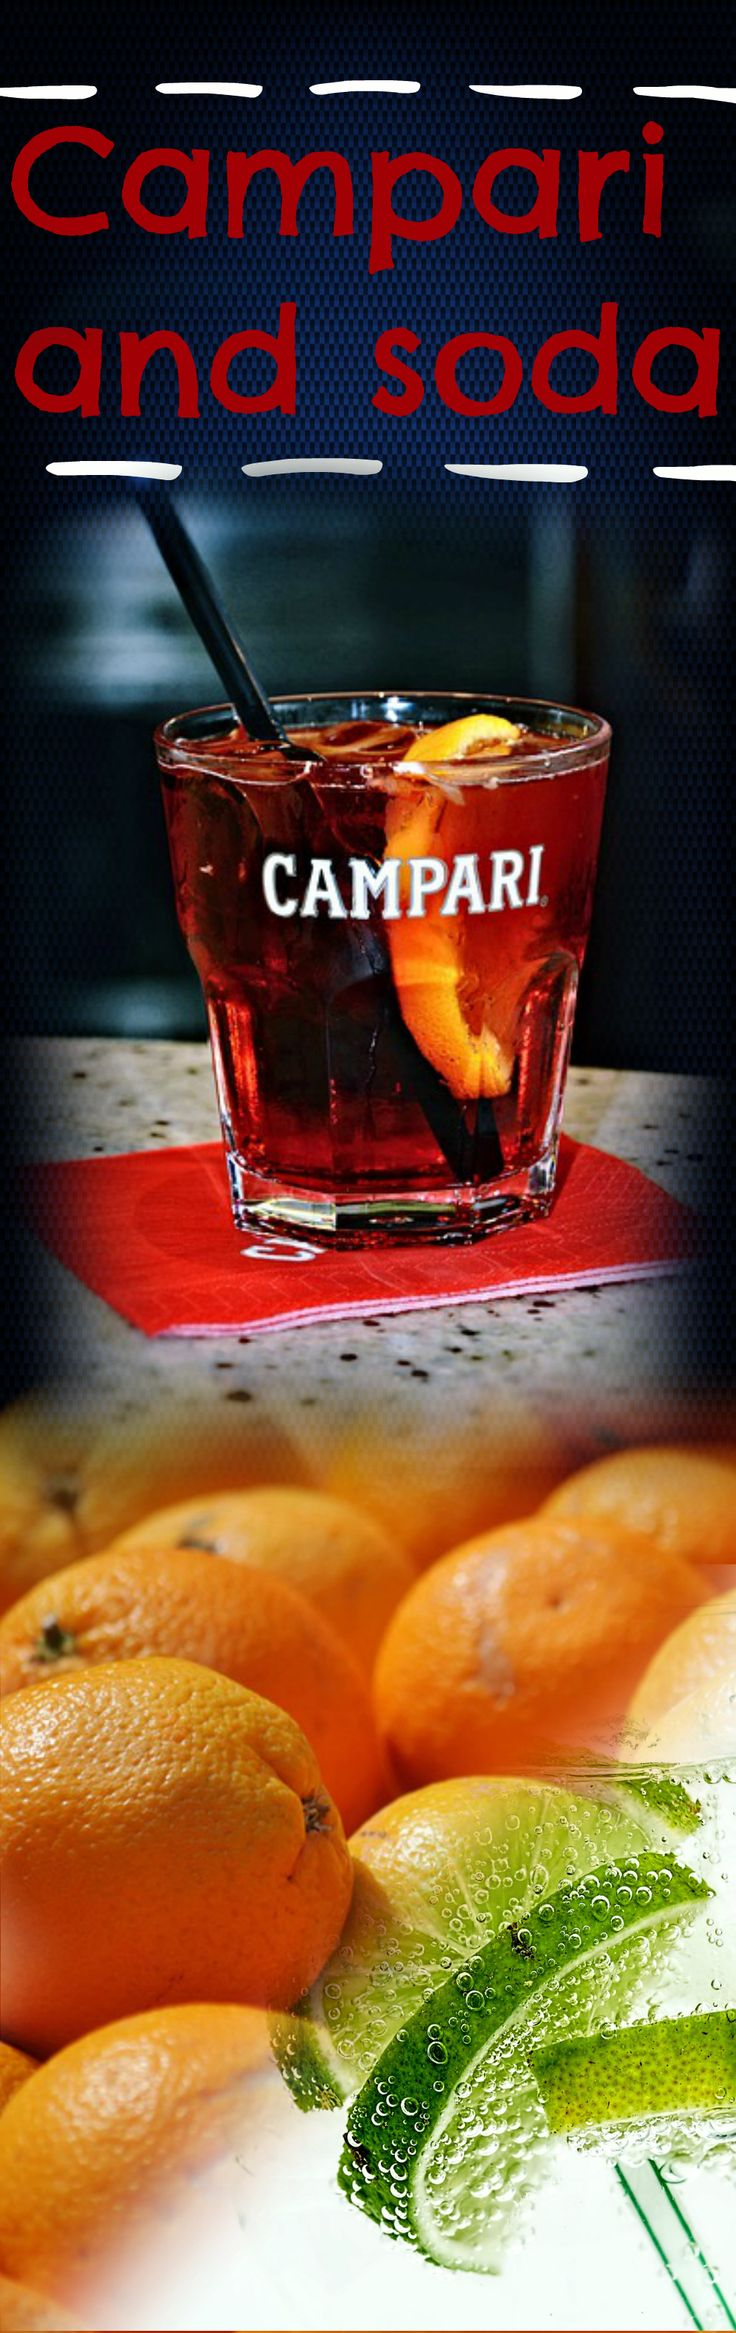 Campari and soda Bitter encouragement in every sweltering heat.